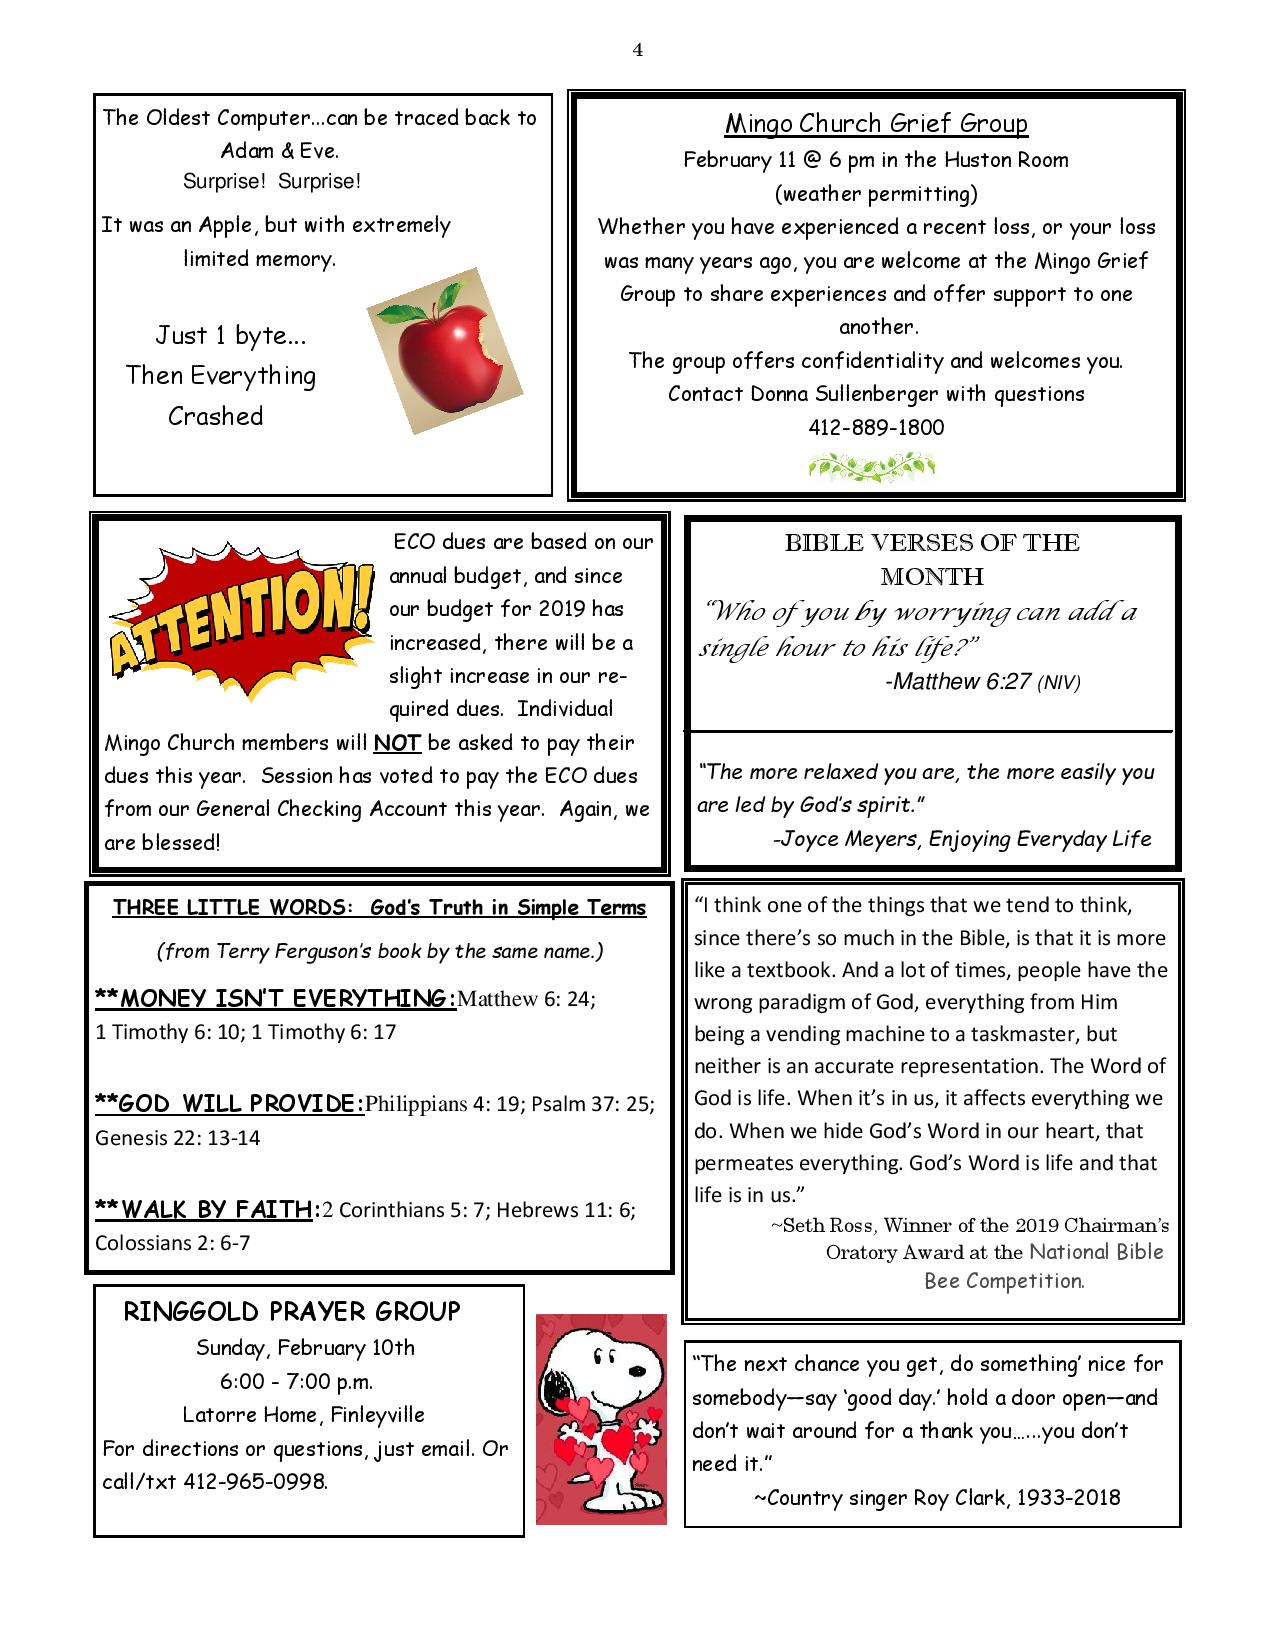 FEBRUARY NEWSLETTER (1)-page-004.jpg